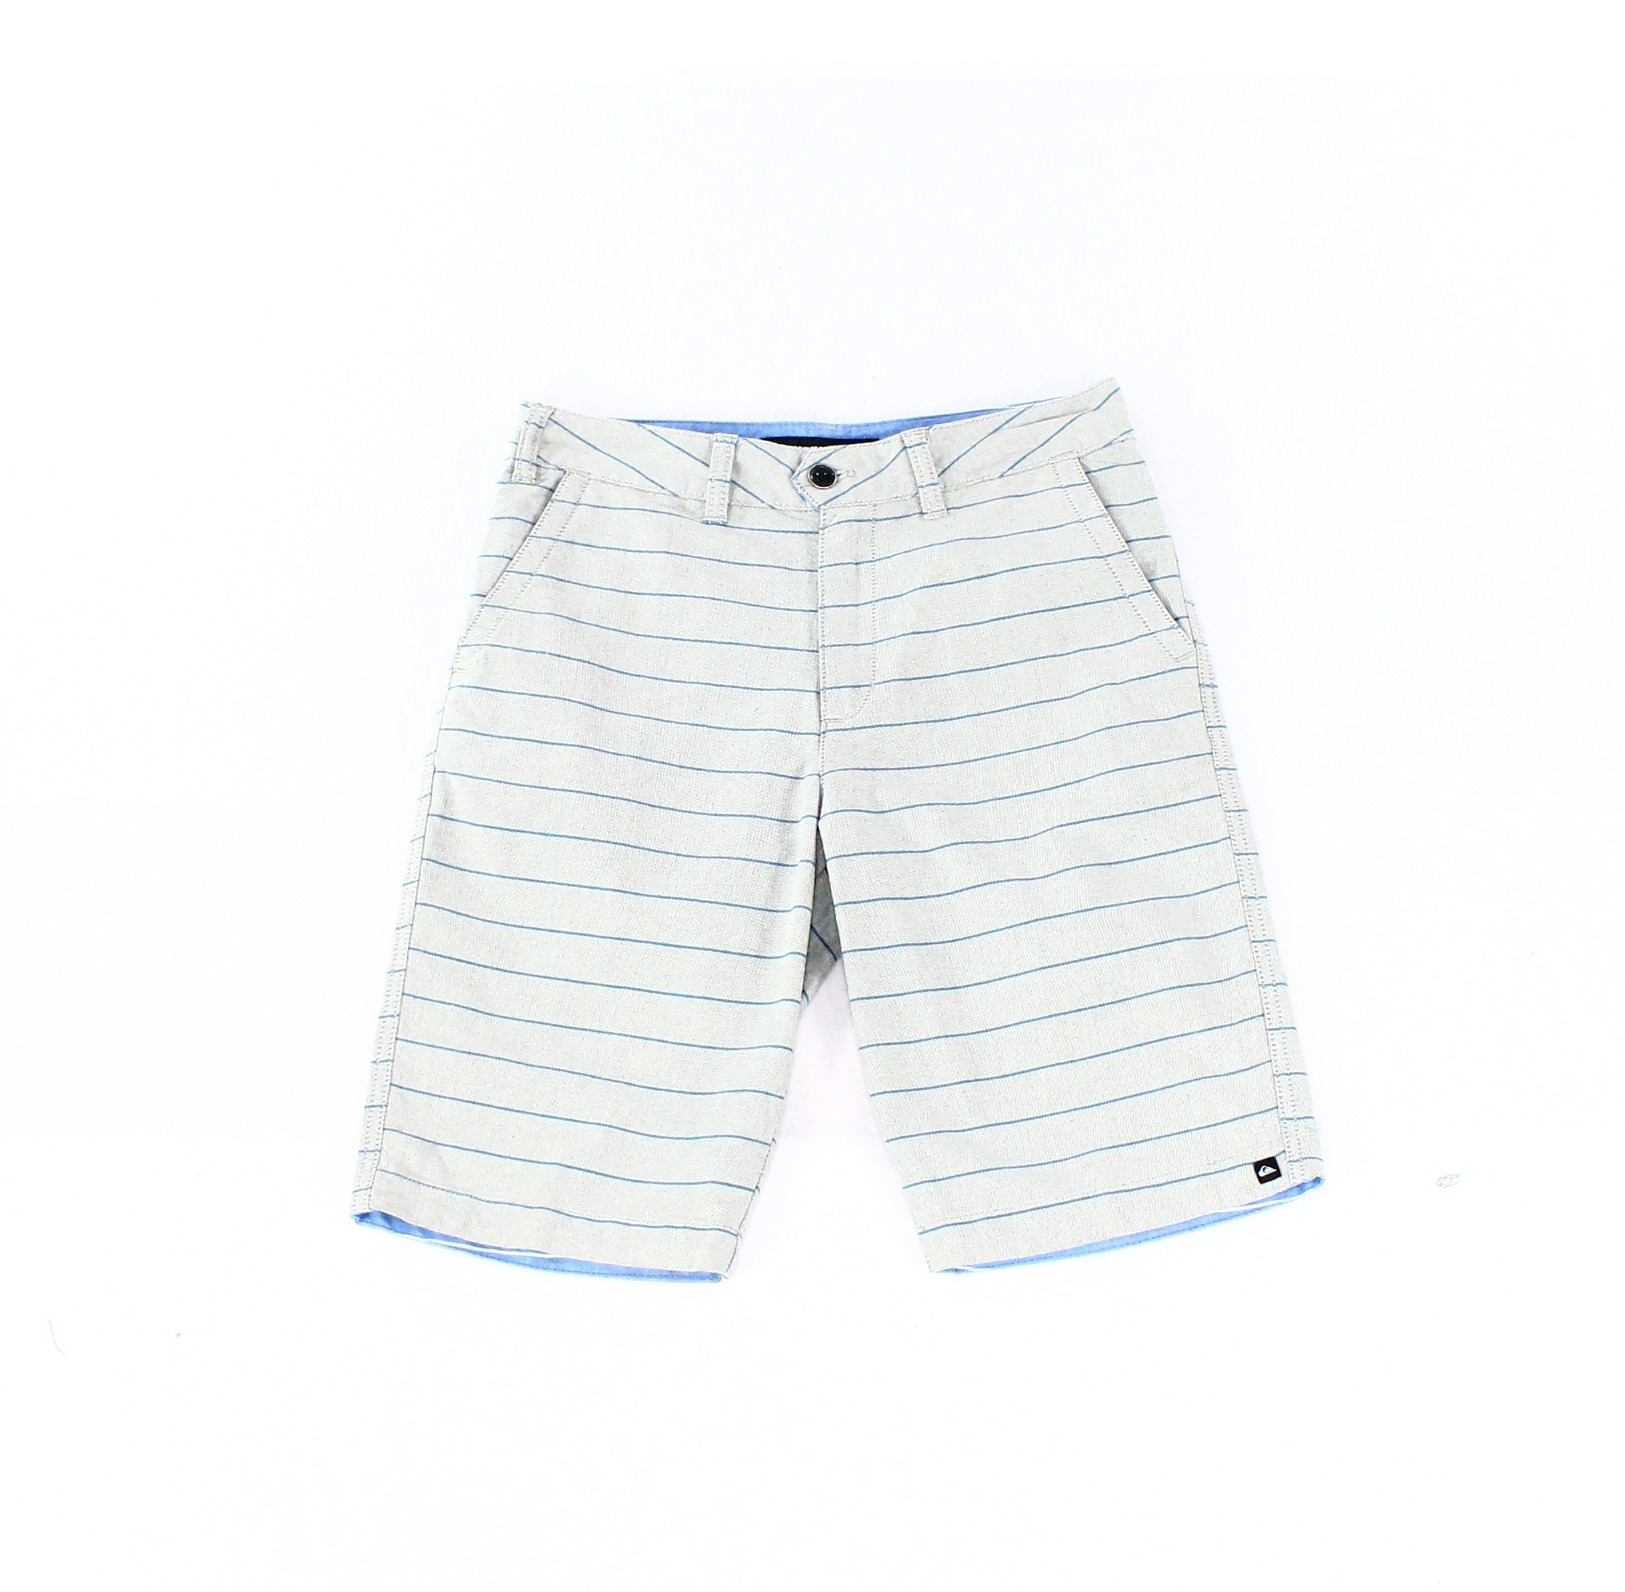 Quiksilver NEW Gray Blue Mens Size 28 Chino Stripe Zipper Fly Shorts